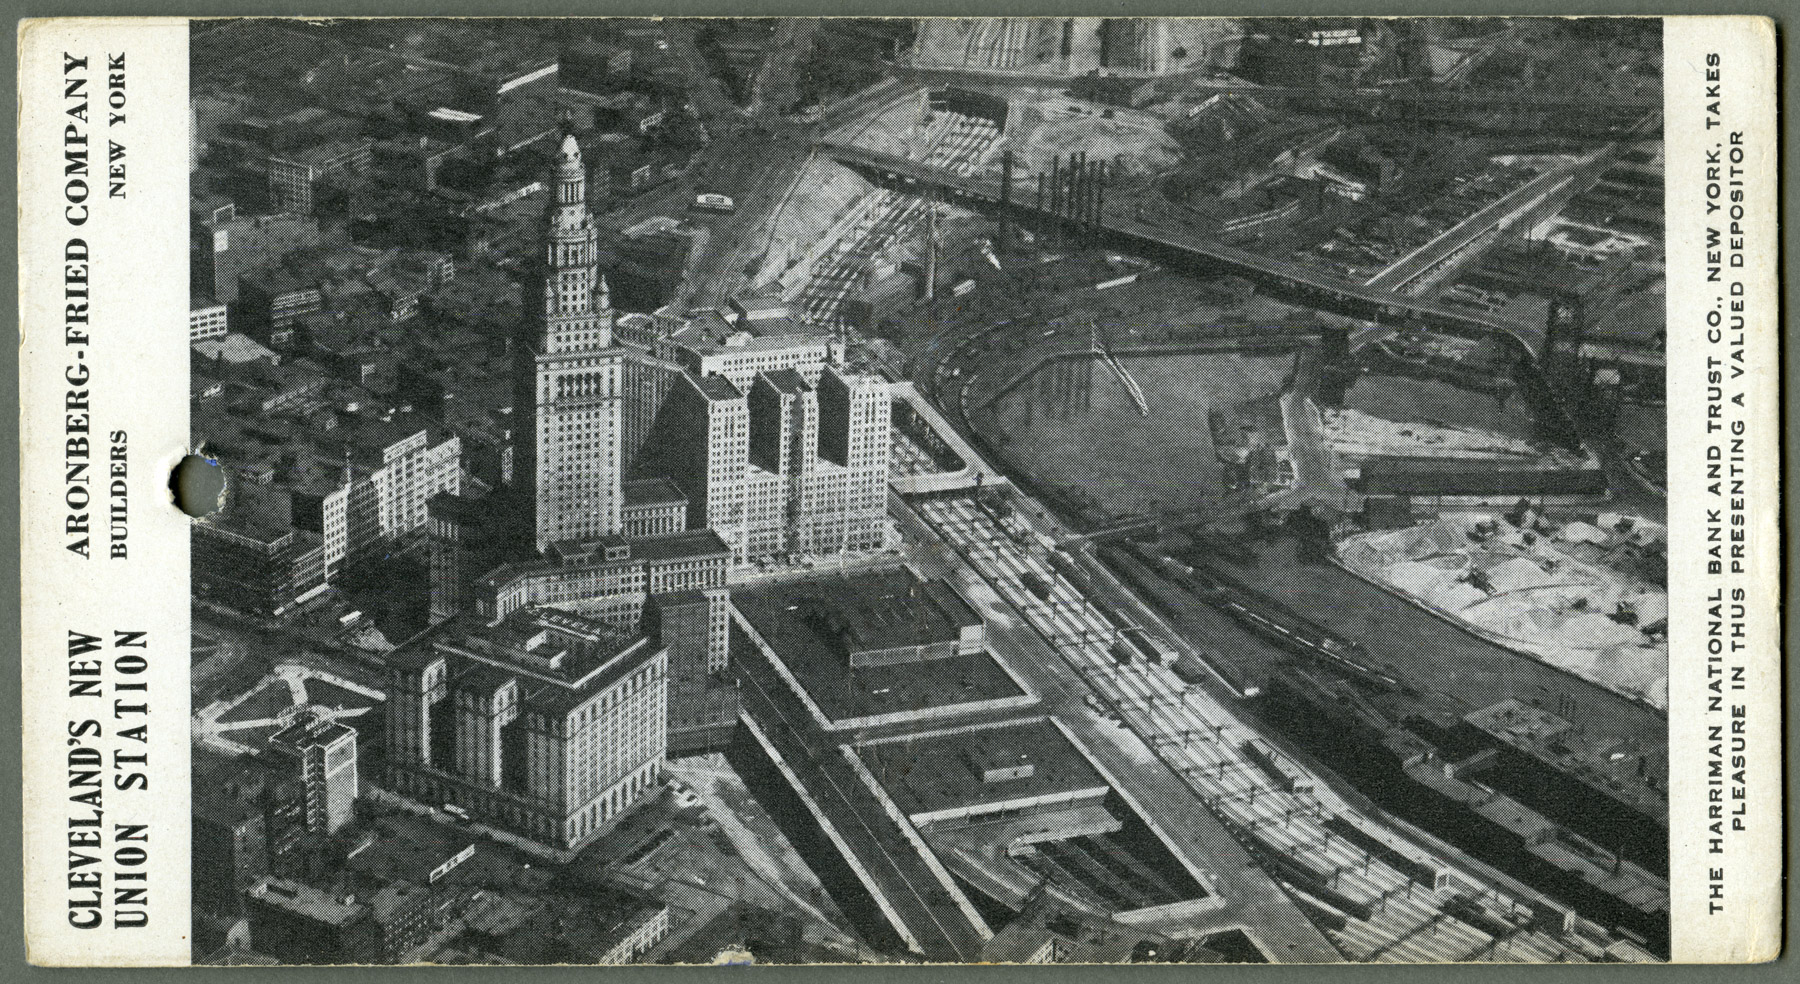 Cleveland Union Station - Aronberg-Fried Company. (1930)